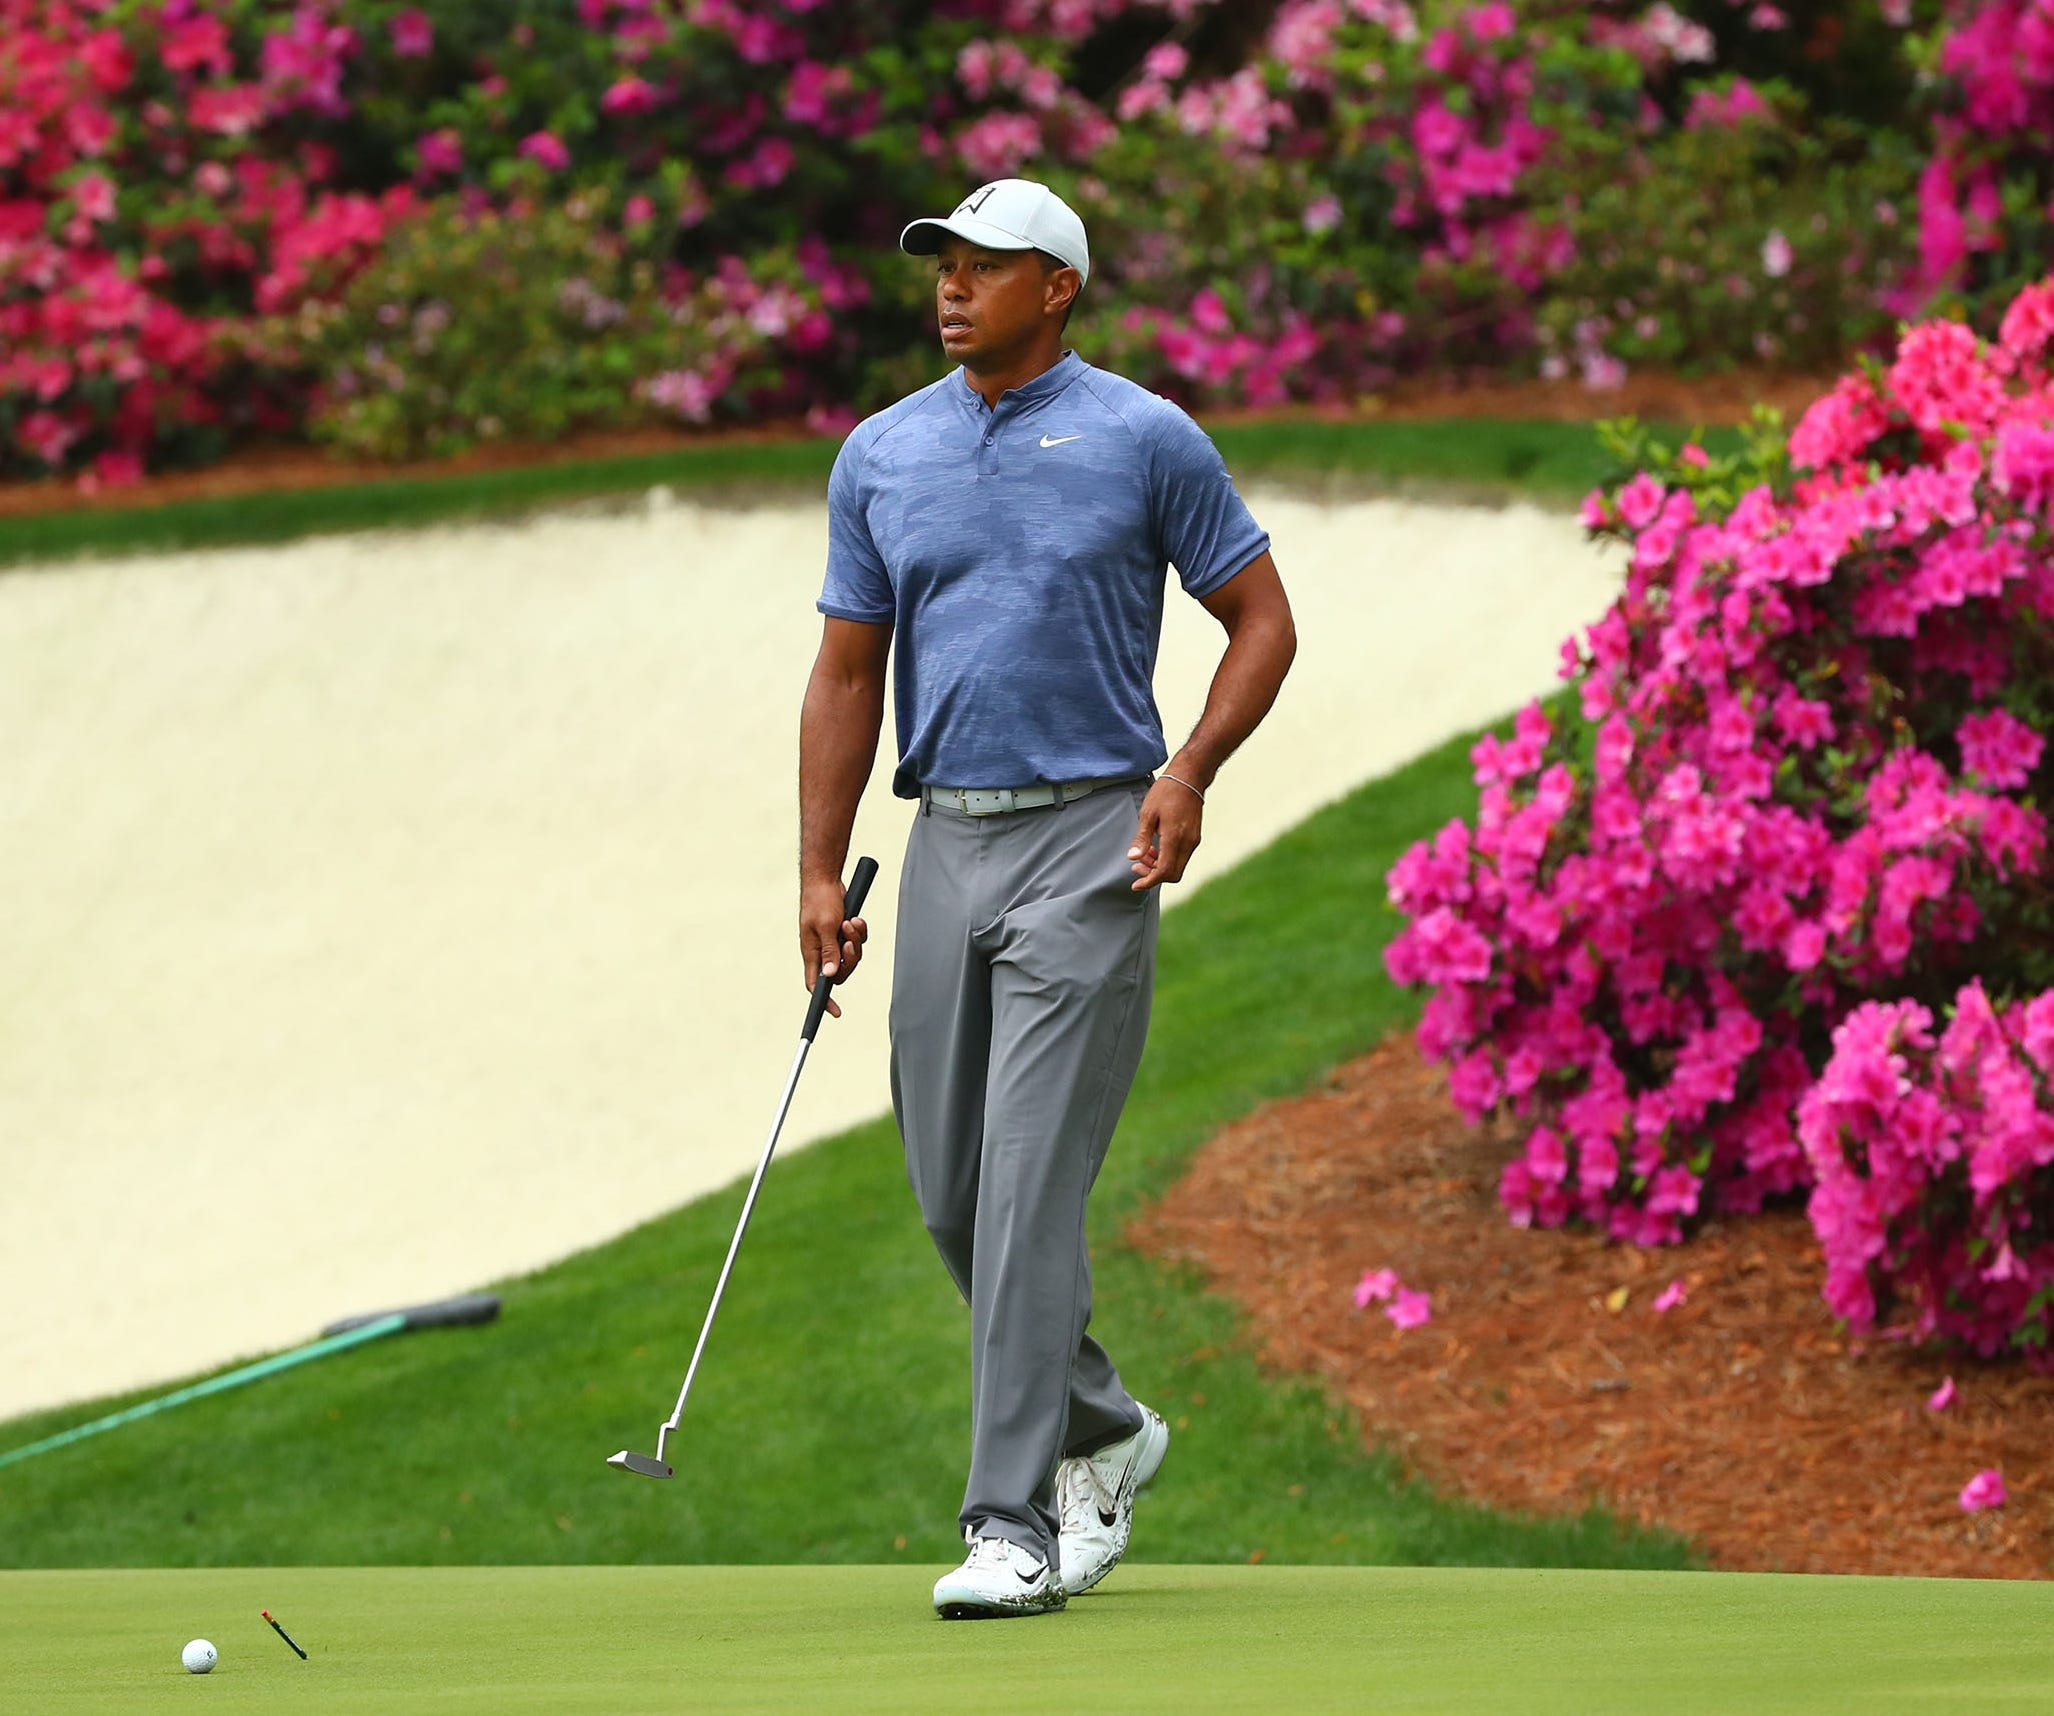 Tiger Woods is shooting for his fifth Masters win.